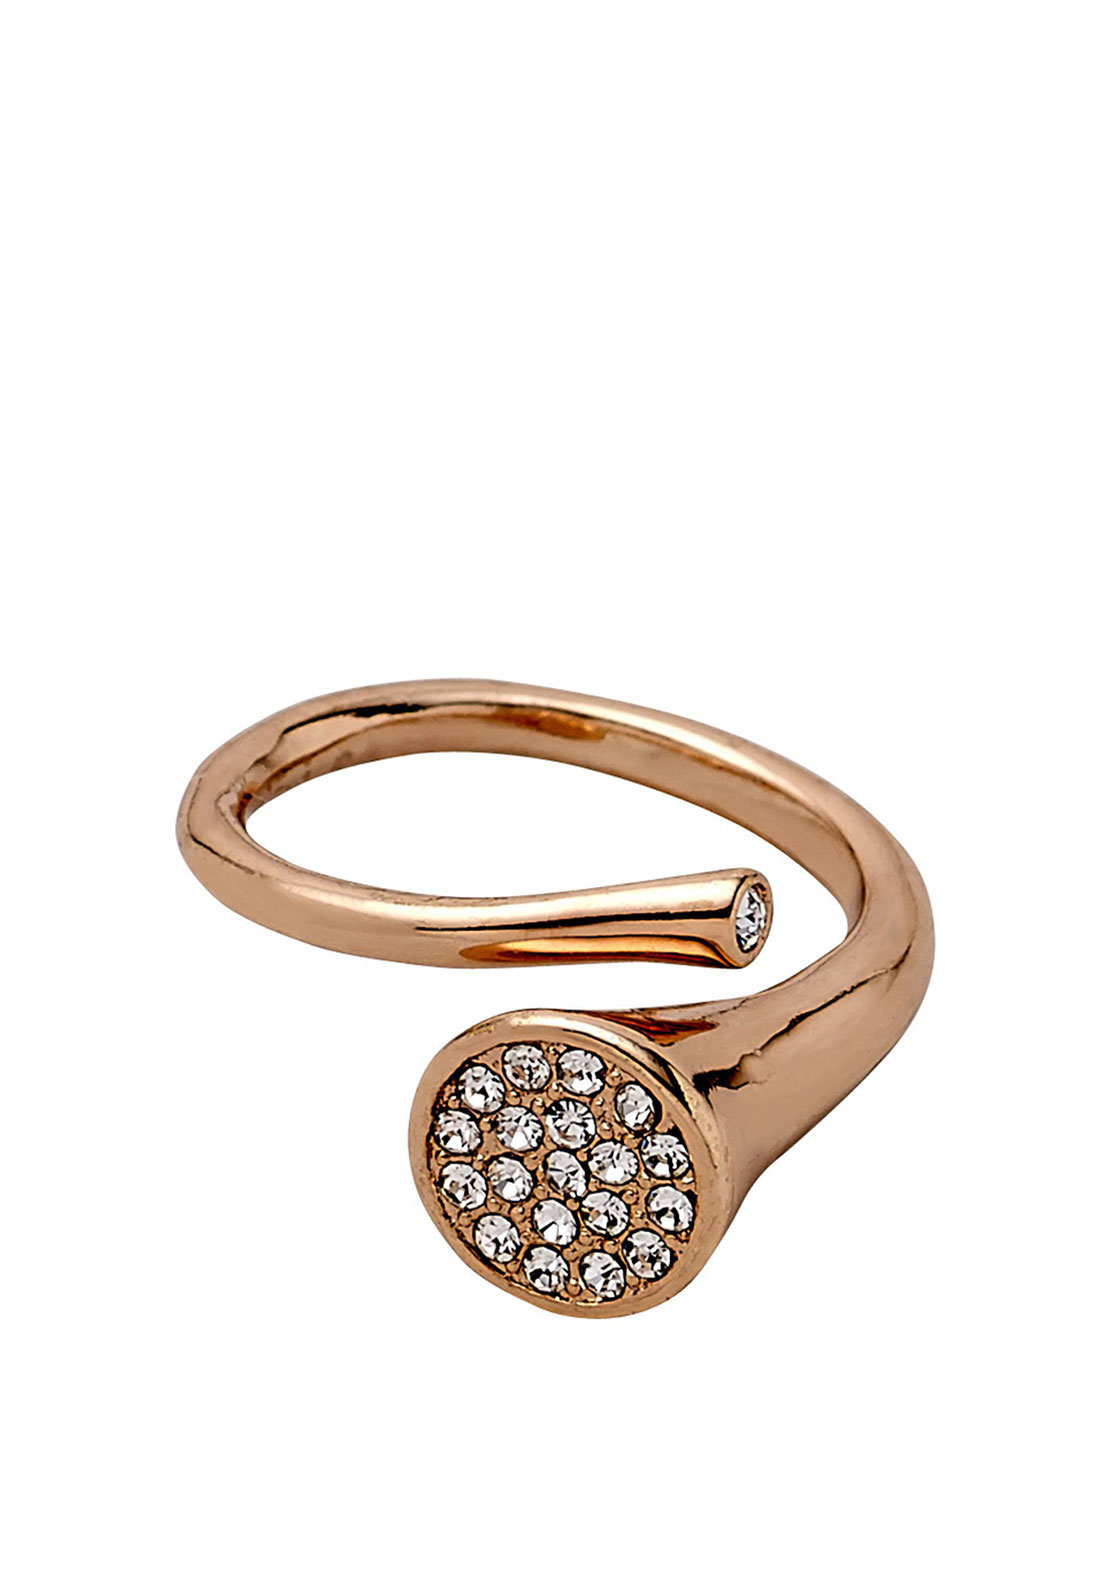 Pilgrim Adjustable Pave Ring, Rose Gold